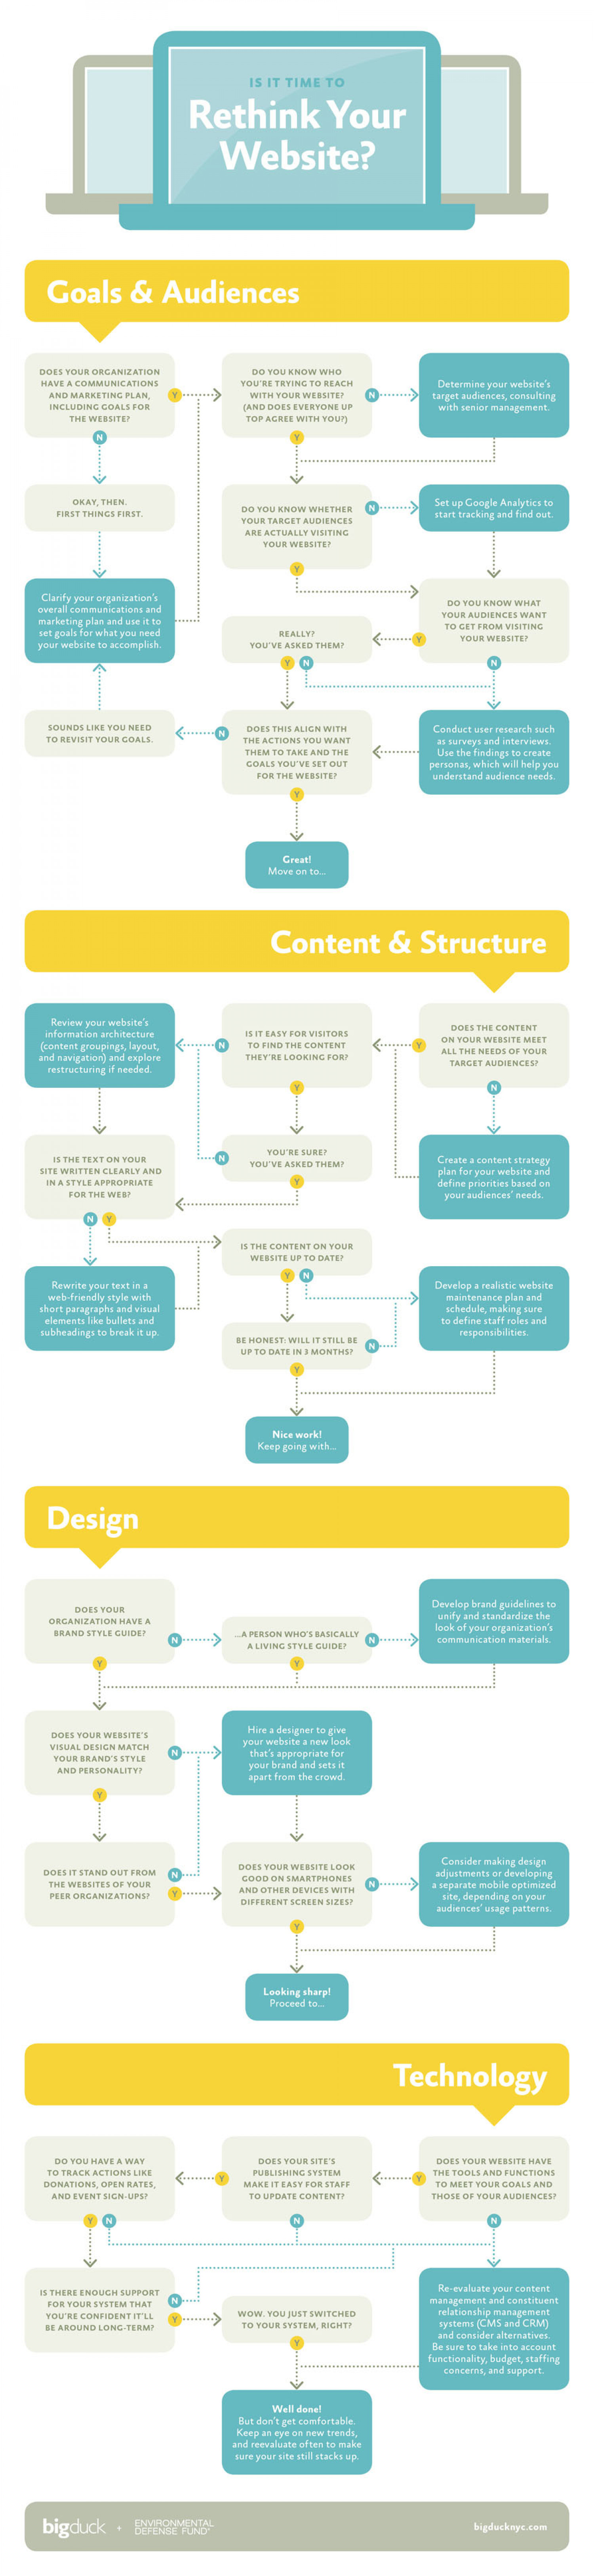 Is it Time to Rethink Your Website Infographic